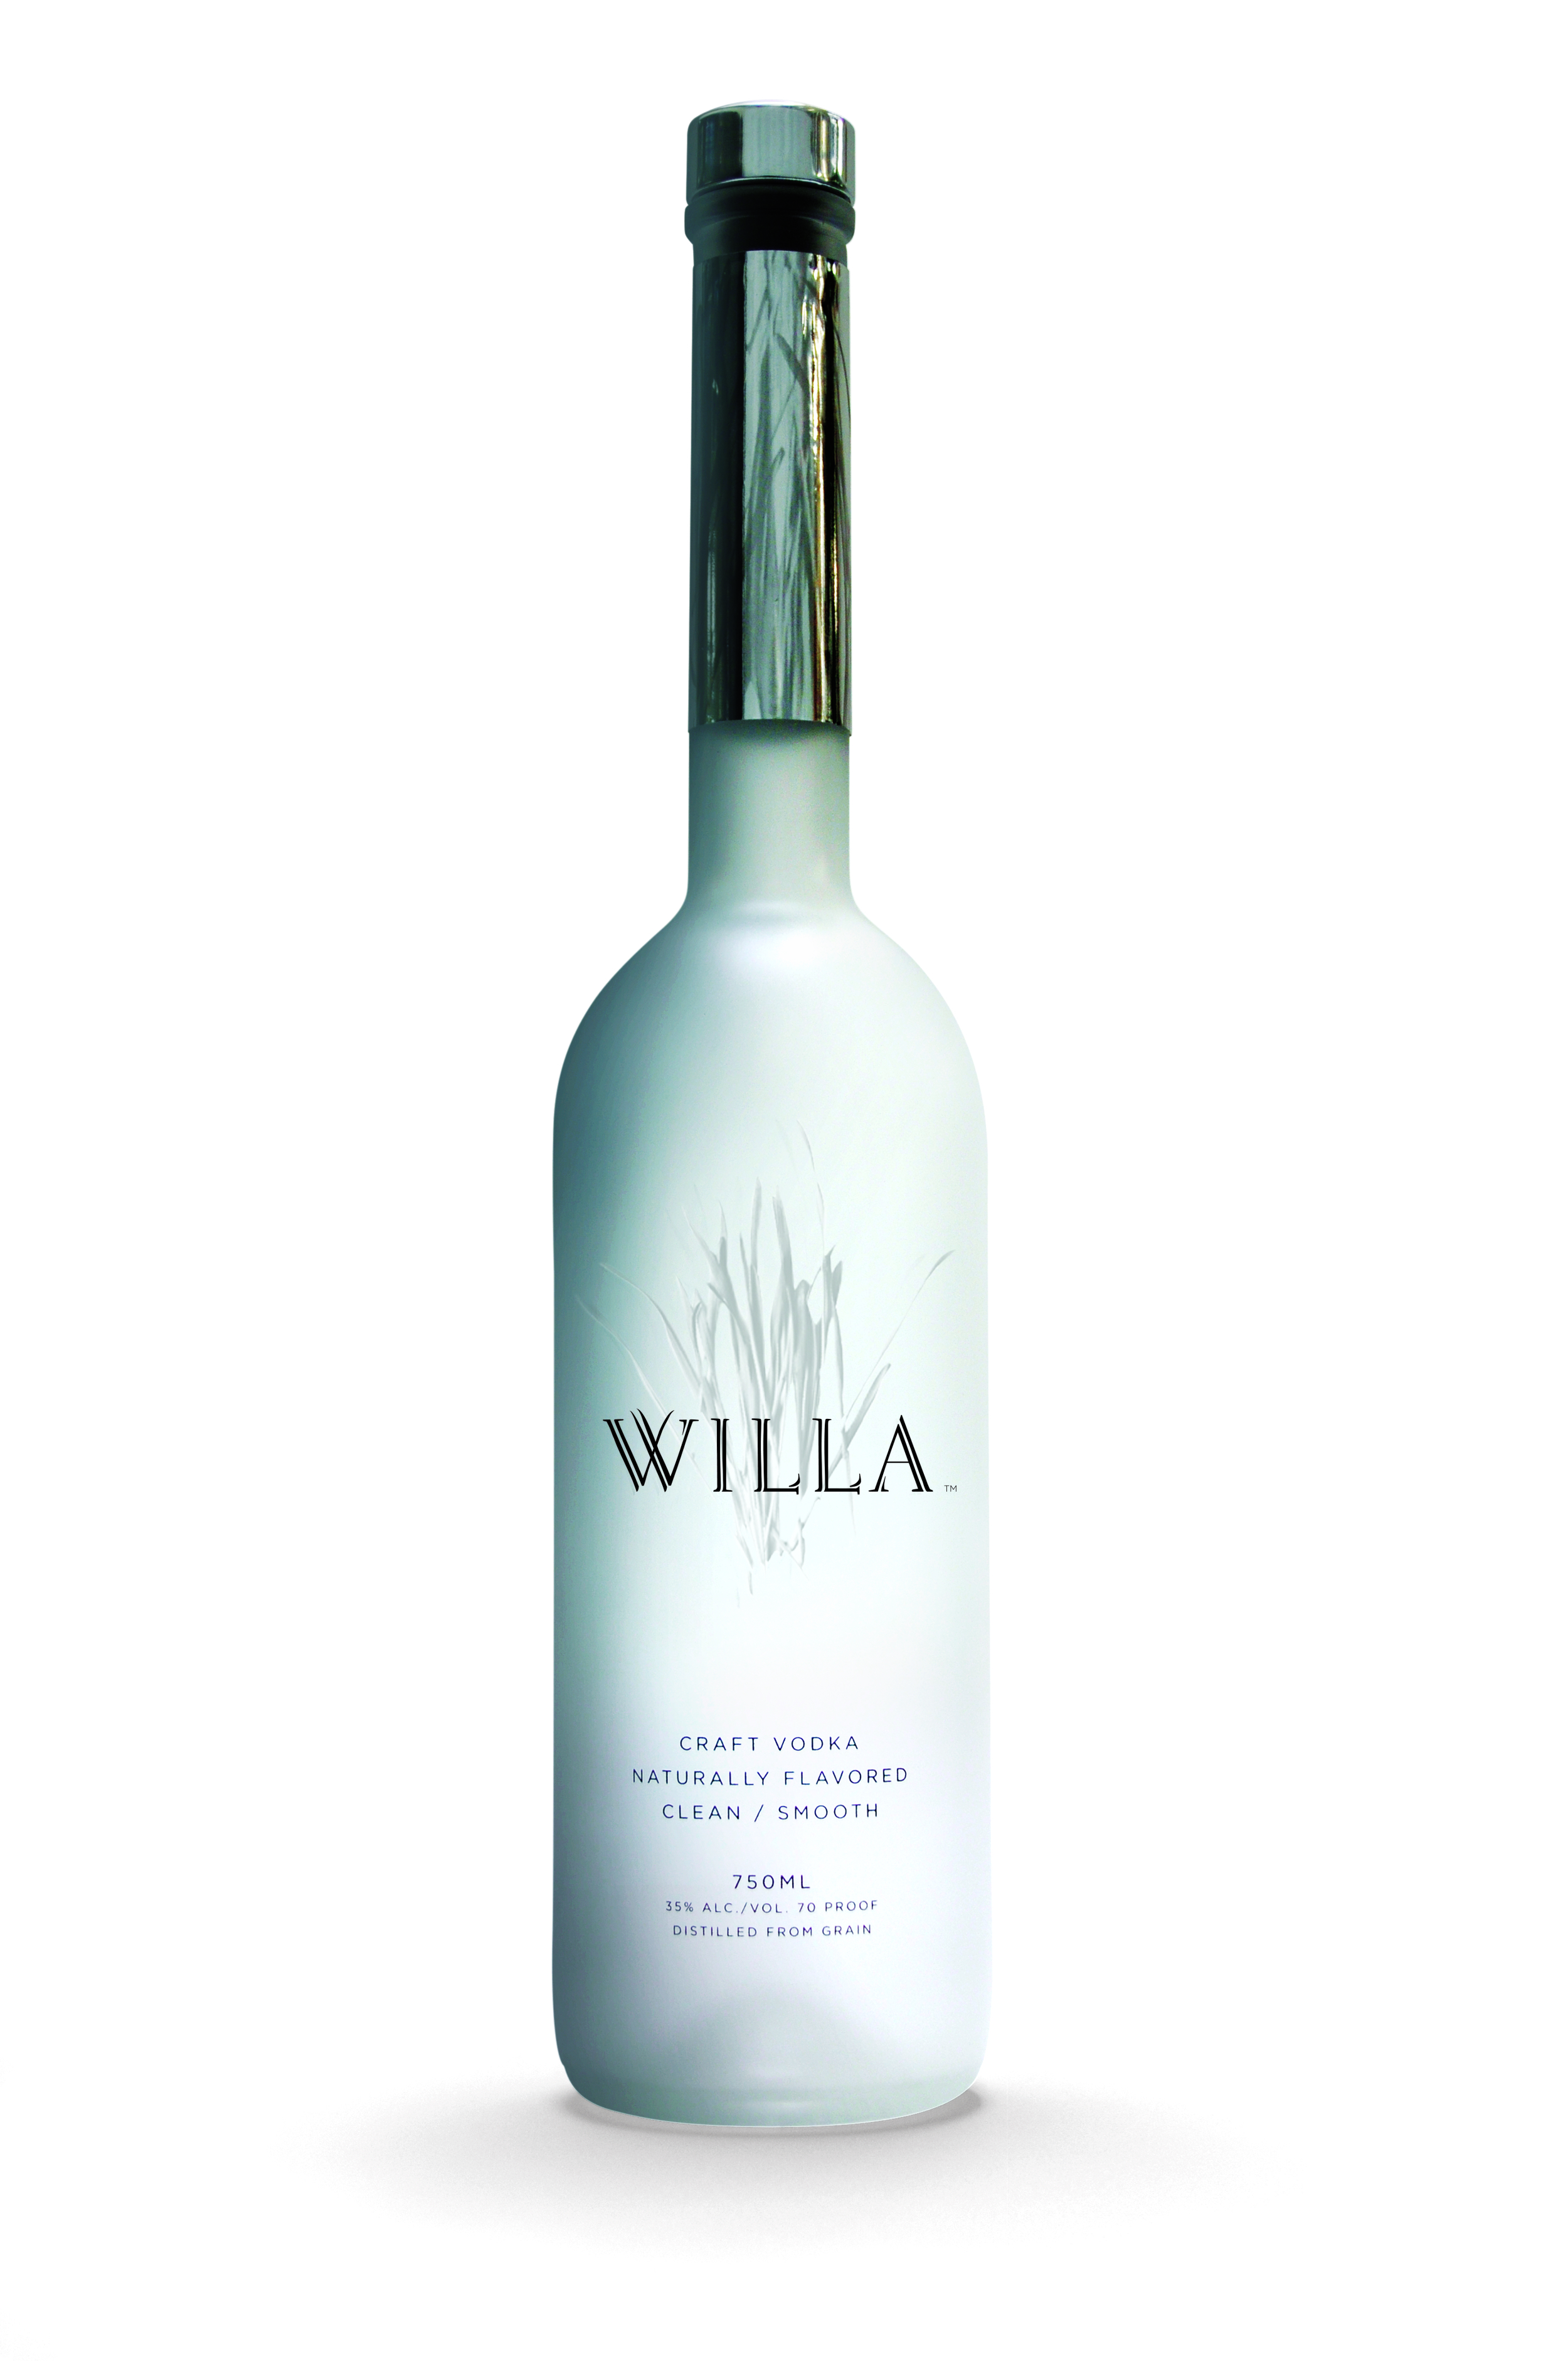 willa-bottle-clipped2_wshadow_new_logo.jpg